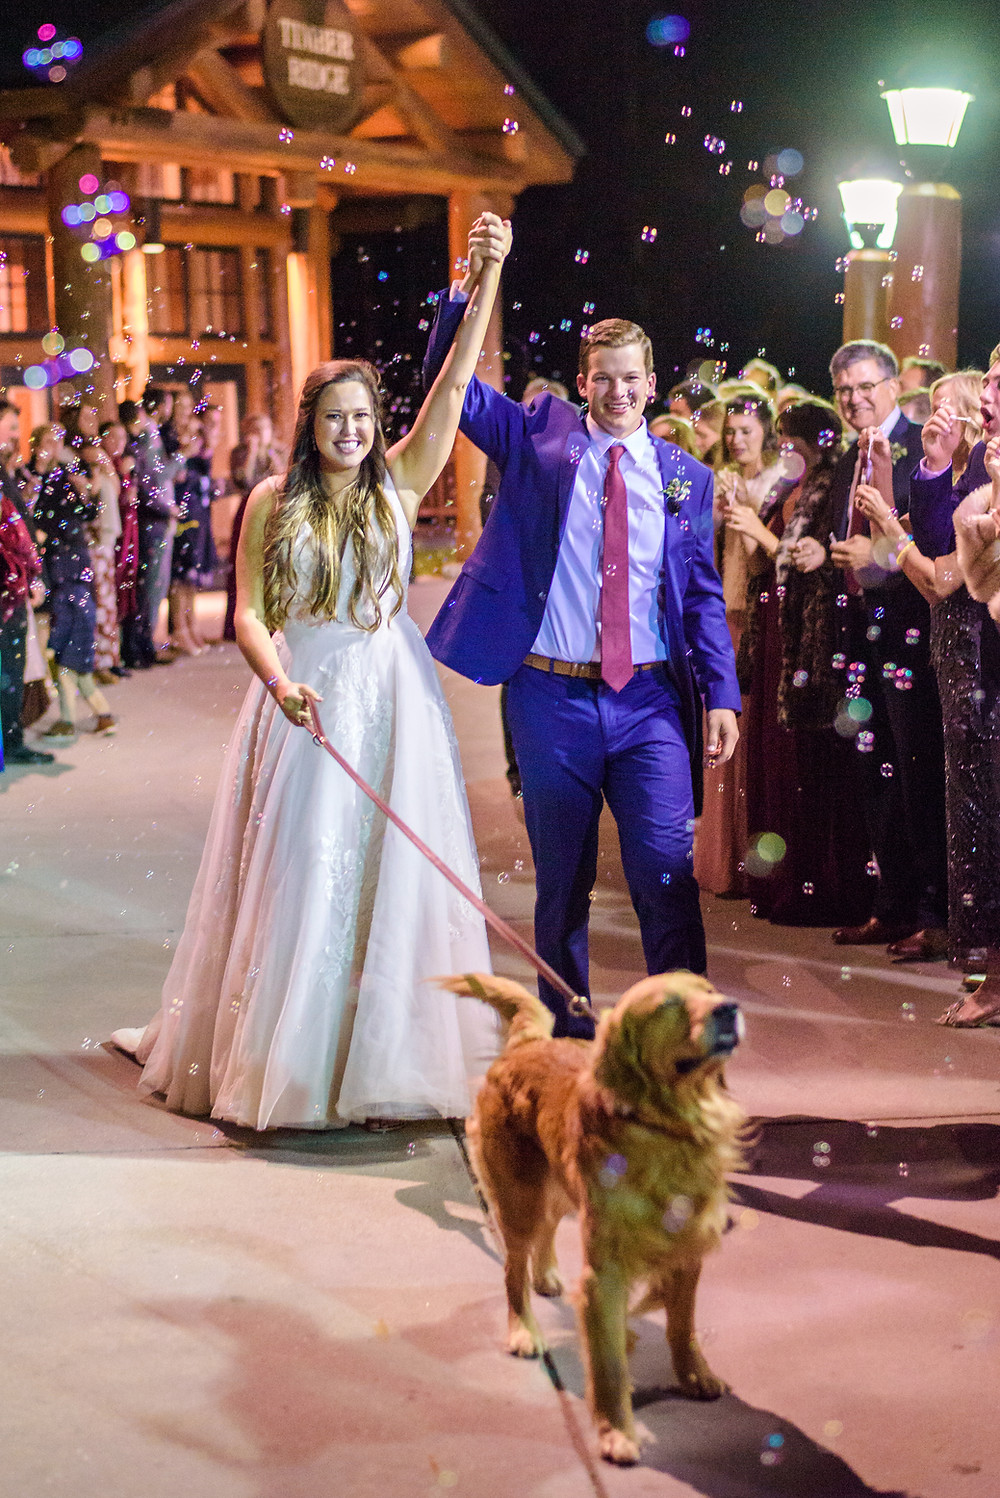 Timber Ridge Wedding - Keystone Wedding - Dog in Wedding